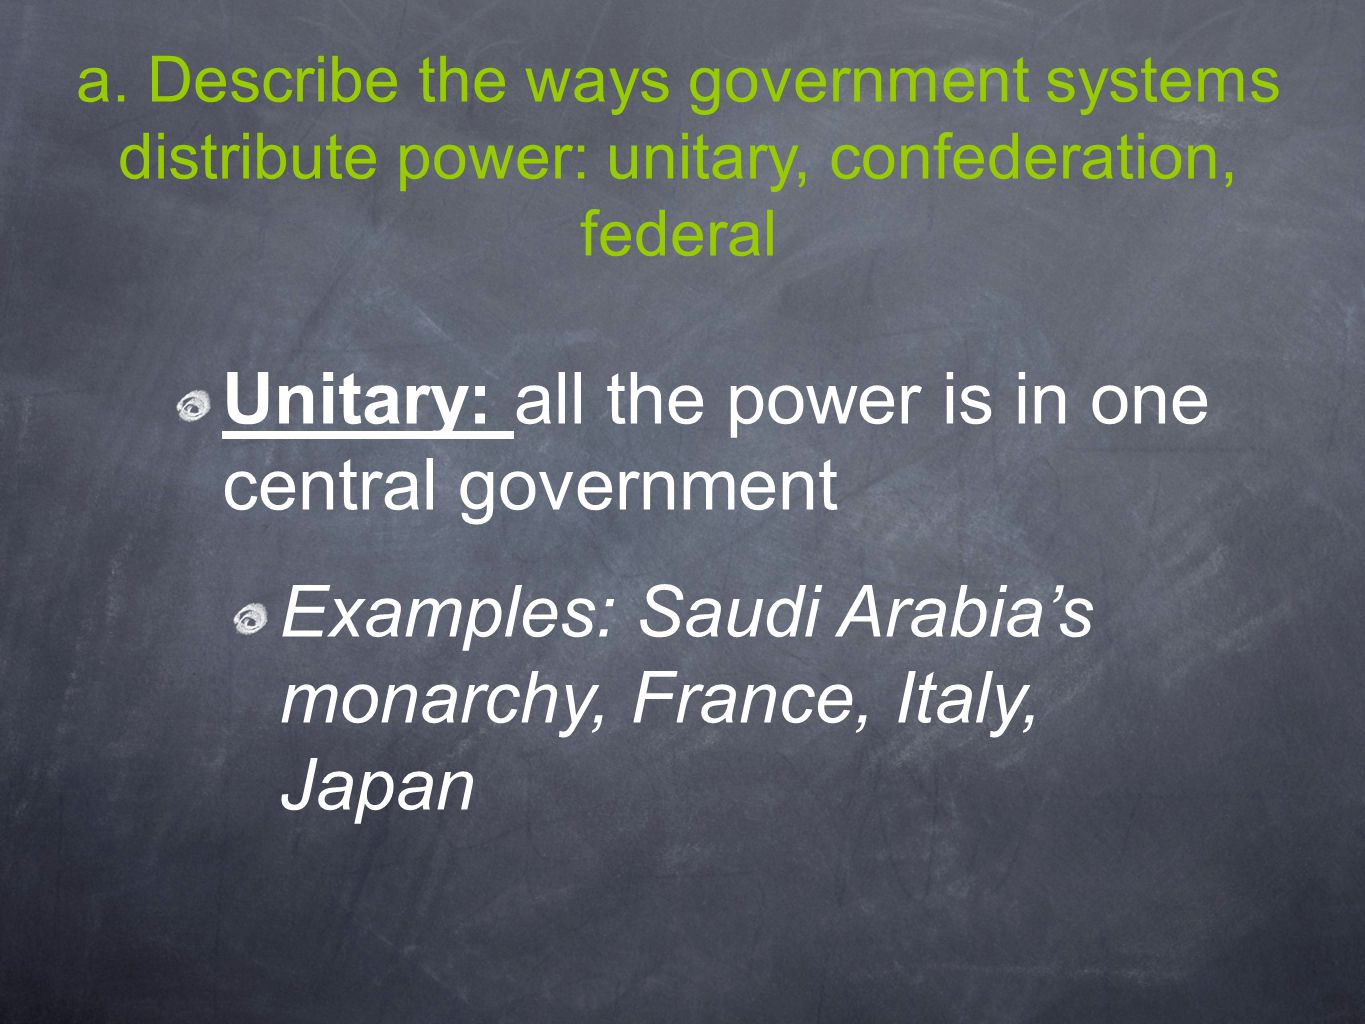 Unitary: all the power is in one central government